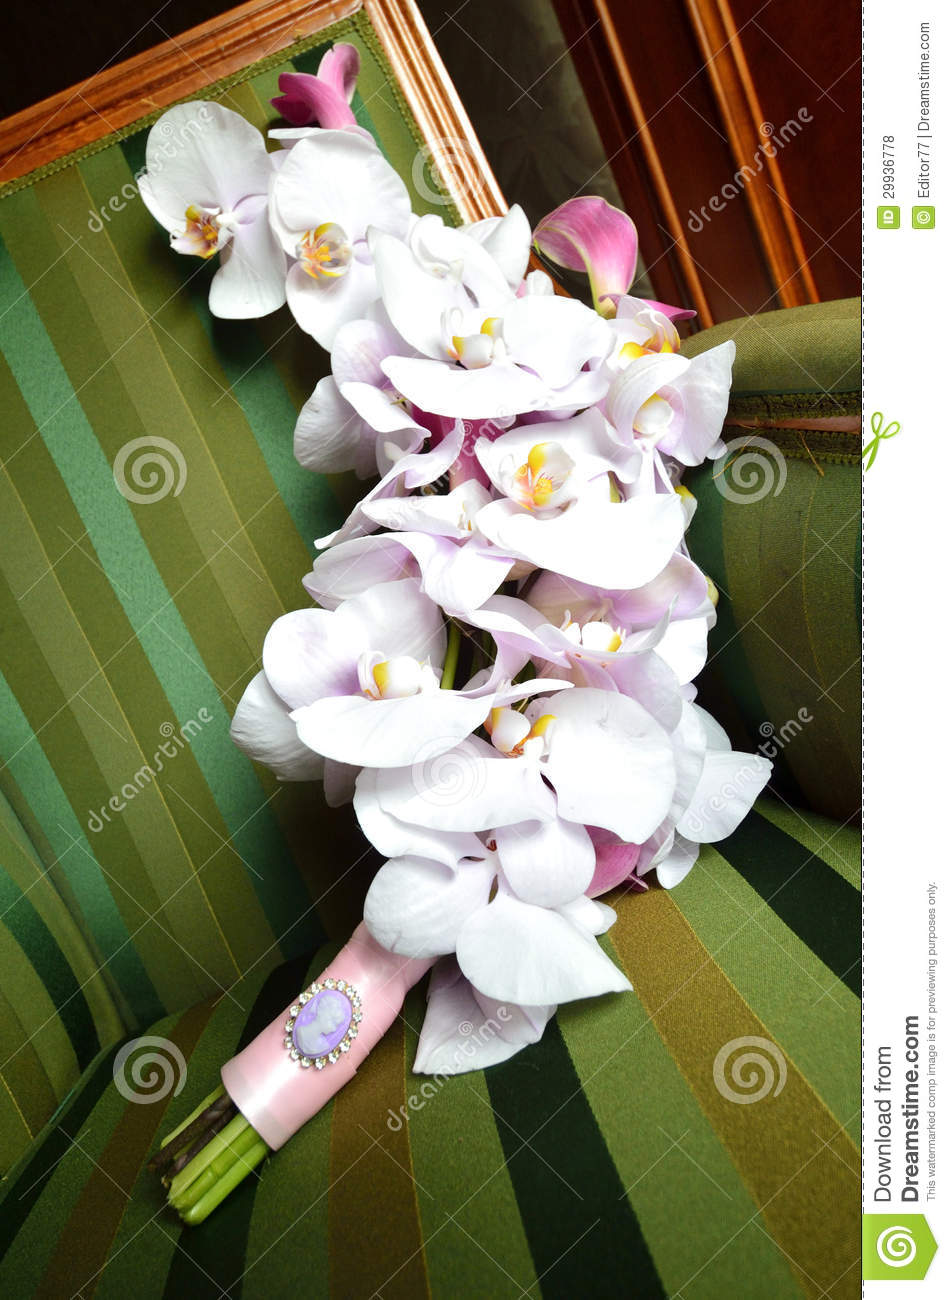 Orchid wedding bouquet stock photo. Image of table, love ...